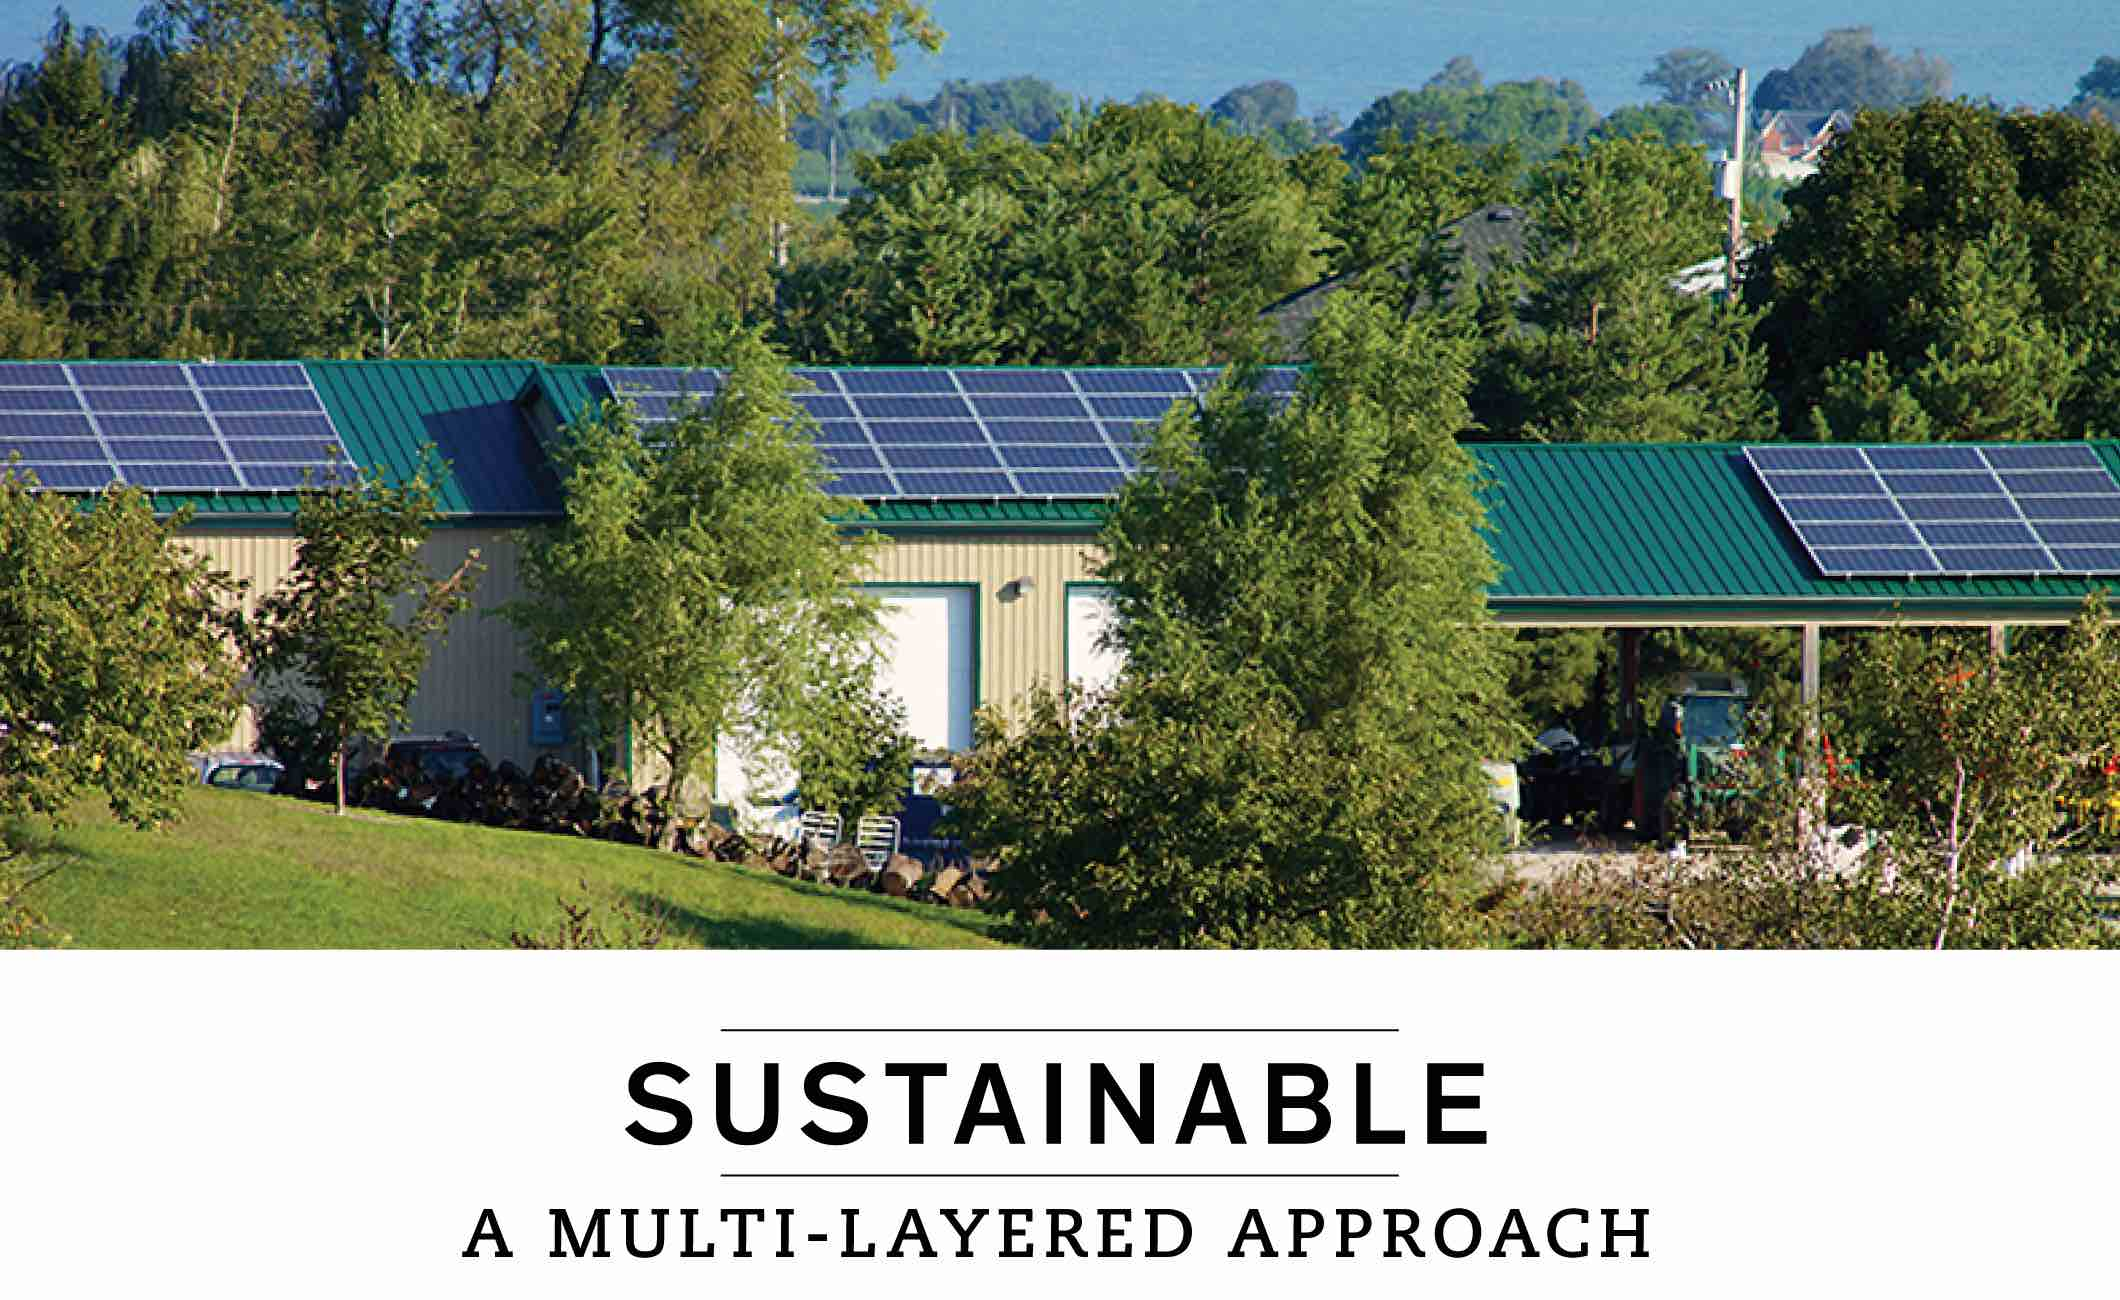 SUSTAINABLE: A MULTI-LAYERED APPROACH